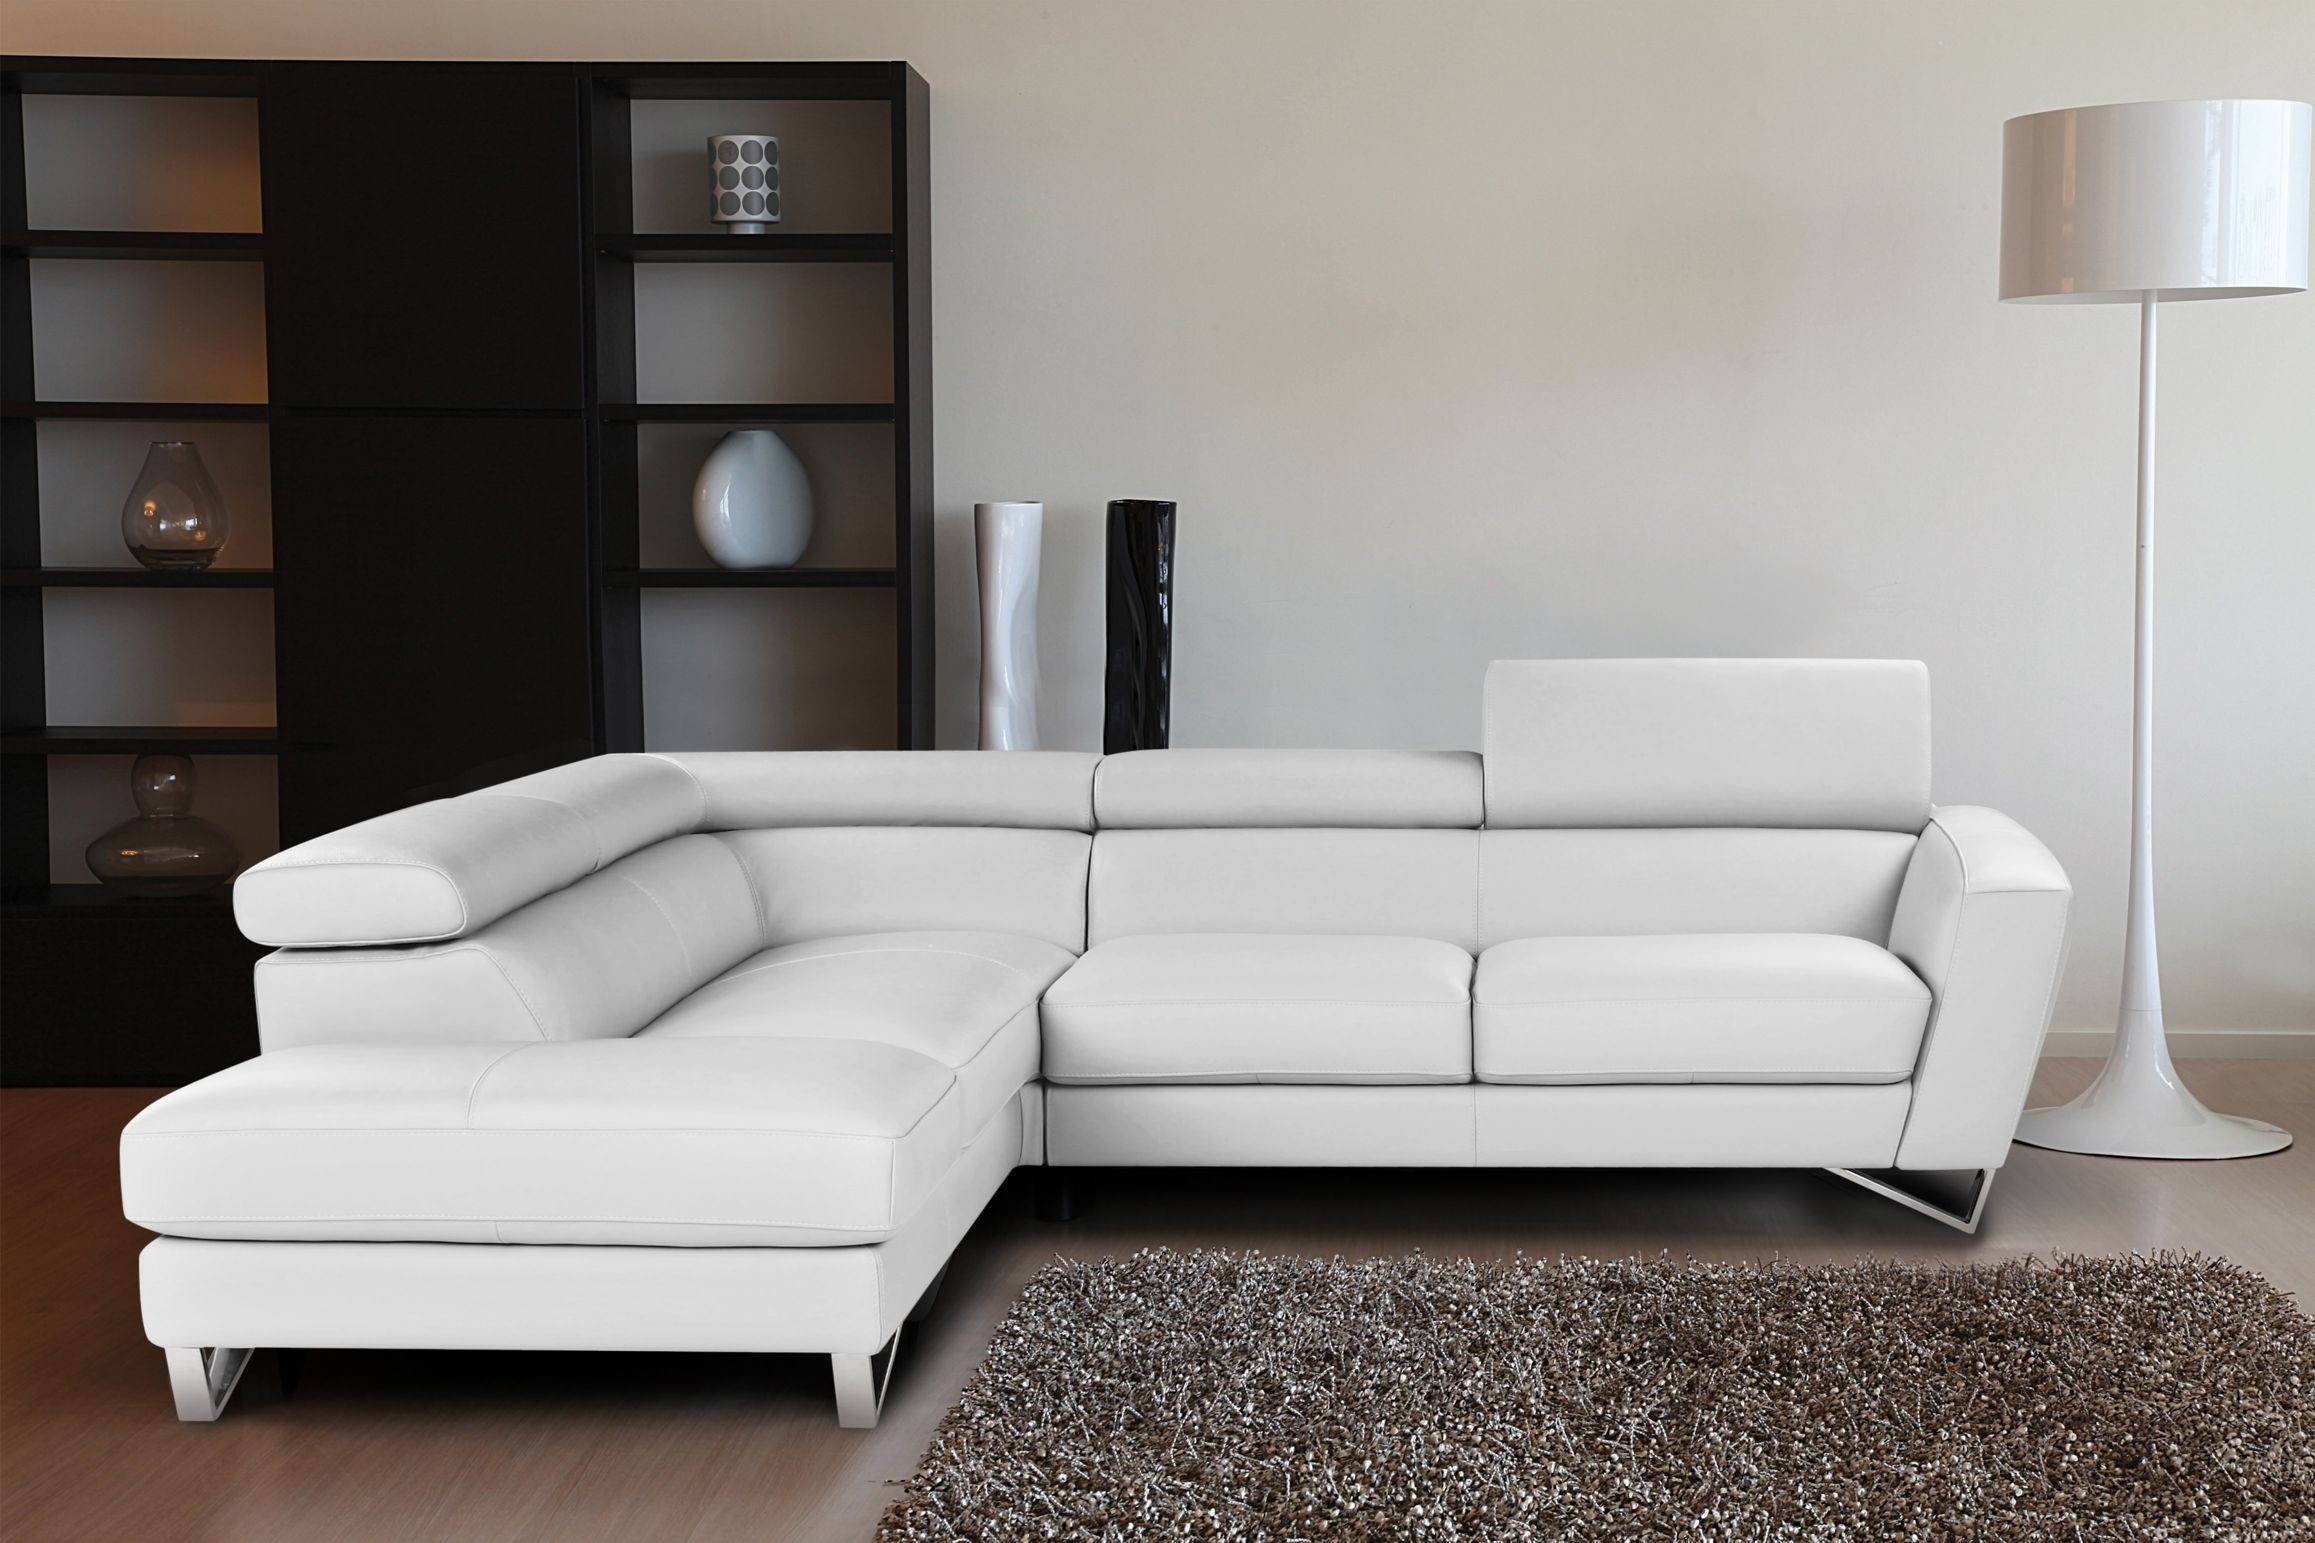 Sparta Italian Leather Modern Sectional Sofa Intended For Modern Sectional Sofas (Image 8 of 10)